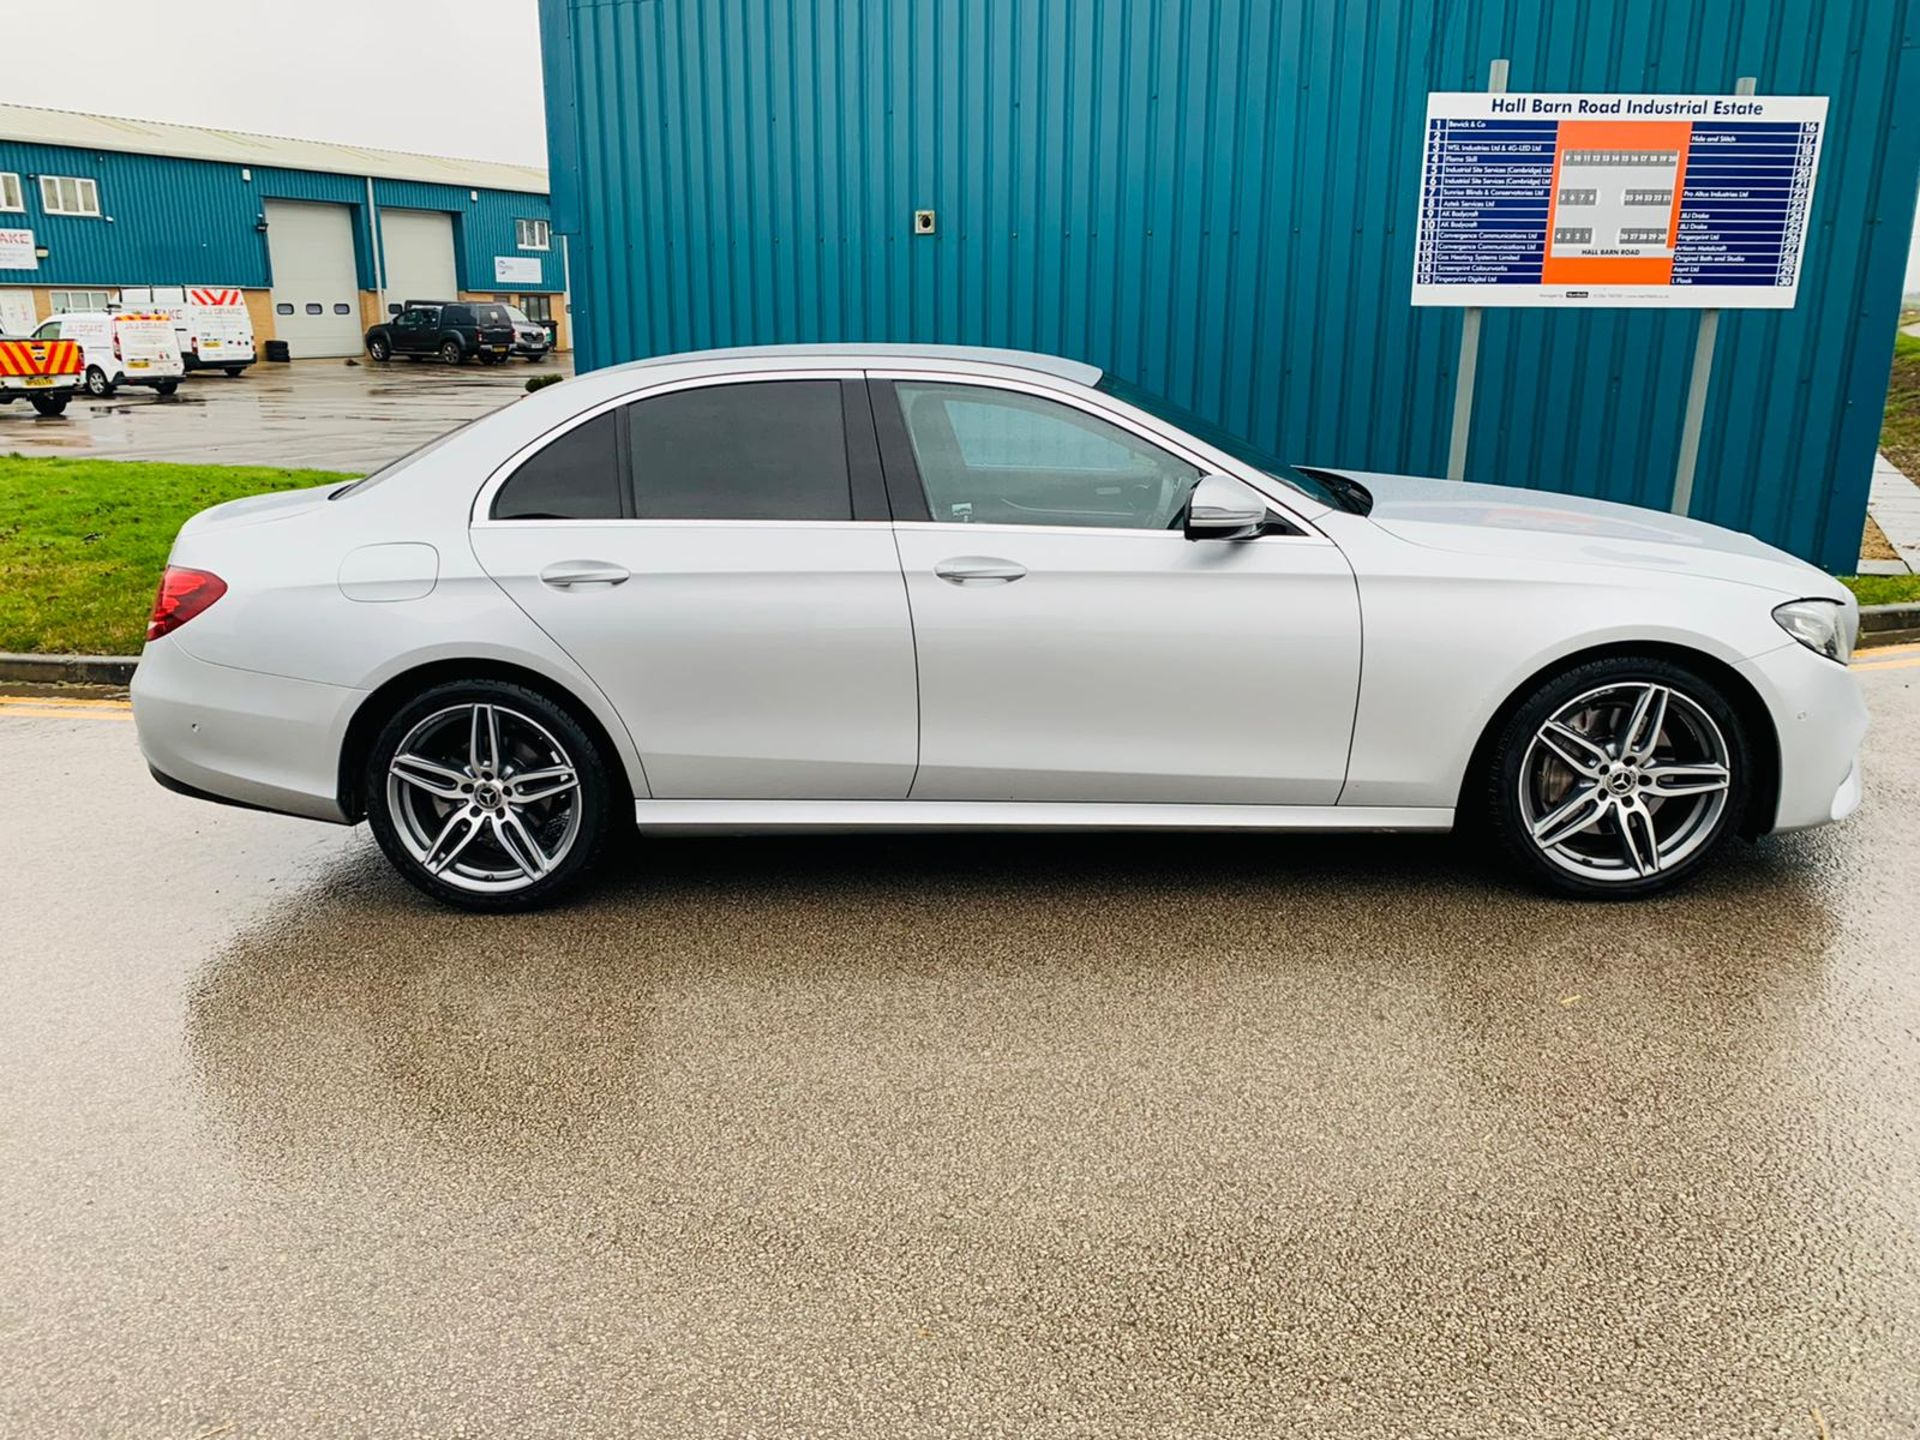 (Reserve Met)Mercedes E220d AMG Line Auto 9G Tronic - 2019 Reg - Reversing Cam - 1 Owner From New - Image 10 of 30